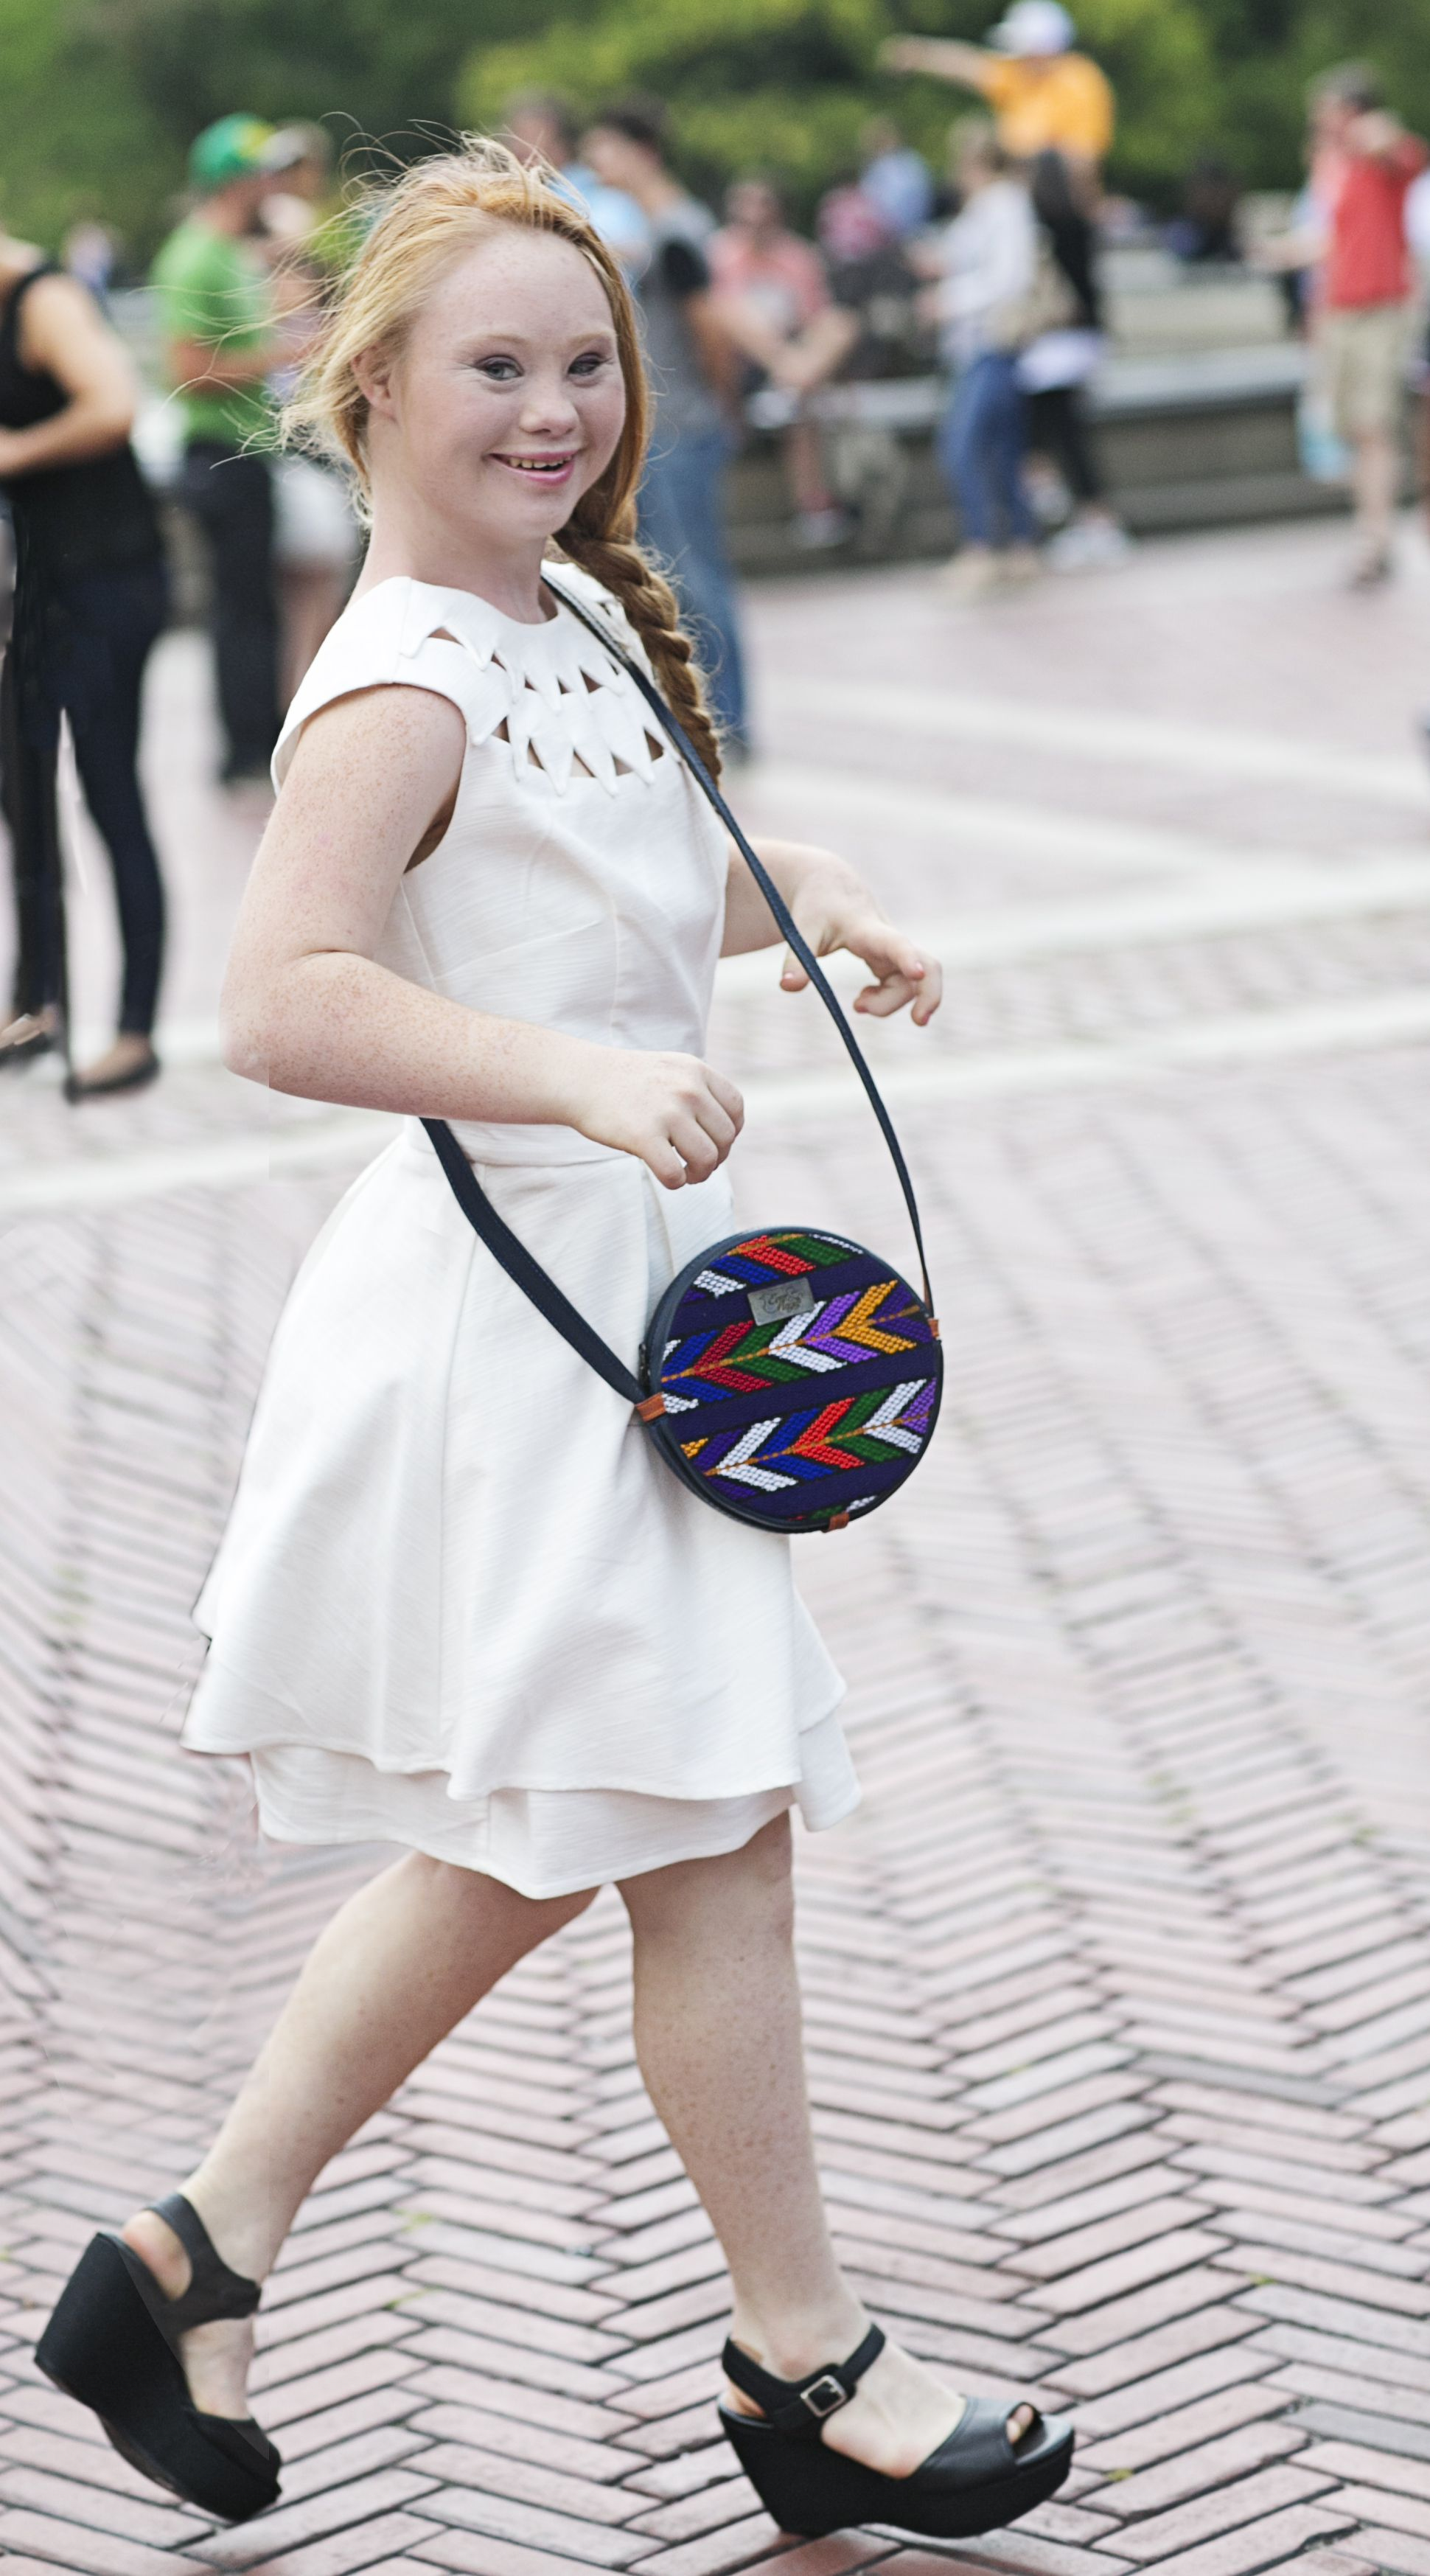 """As featured in Cosmo, People, & PopSugar, """"The Madeline"""" is the newest line of handbags from EverMaya. Named for and inspired by Madeline Stuart, 5% of every purchase will be donated to The National Down Syndrome Society."""